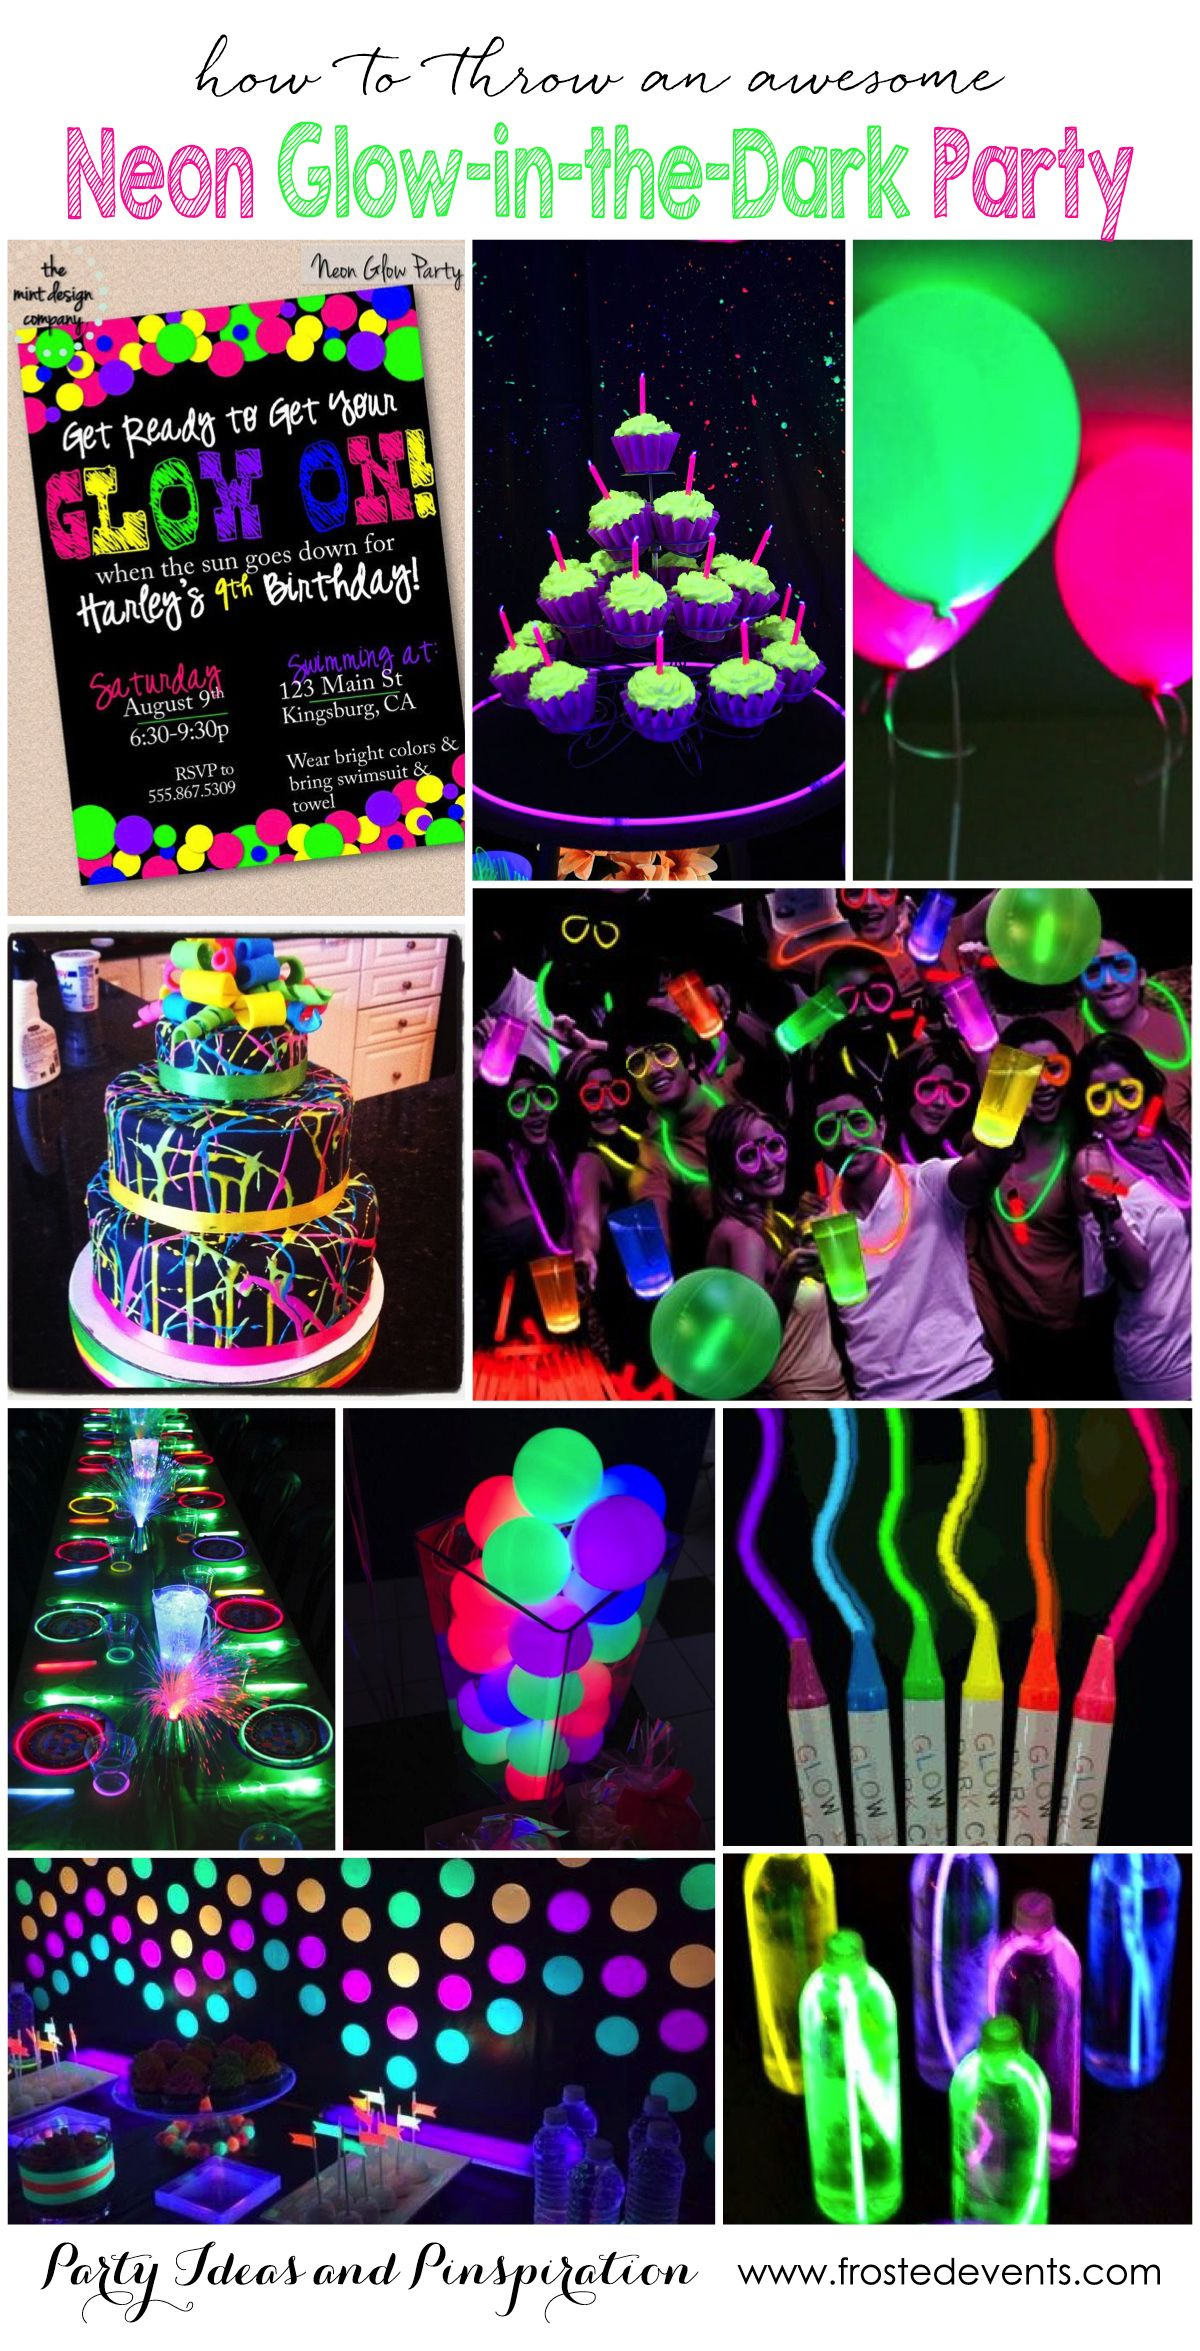 awesome party theme neon glow in the dark party ideas kids love neon parties super fun heres lots of great ideas for throwing the coolest neon party